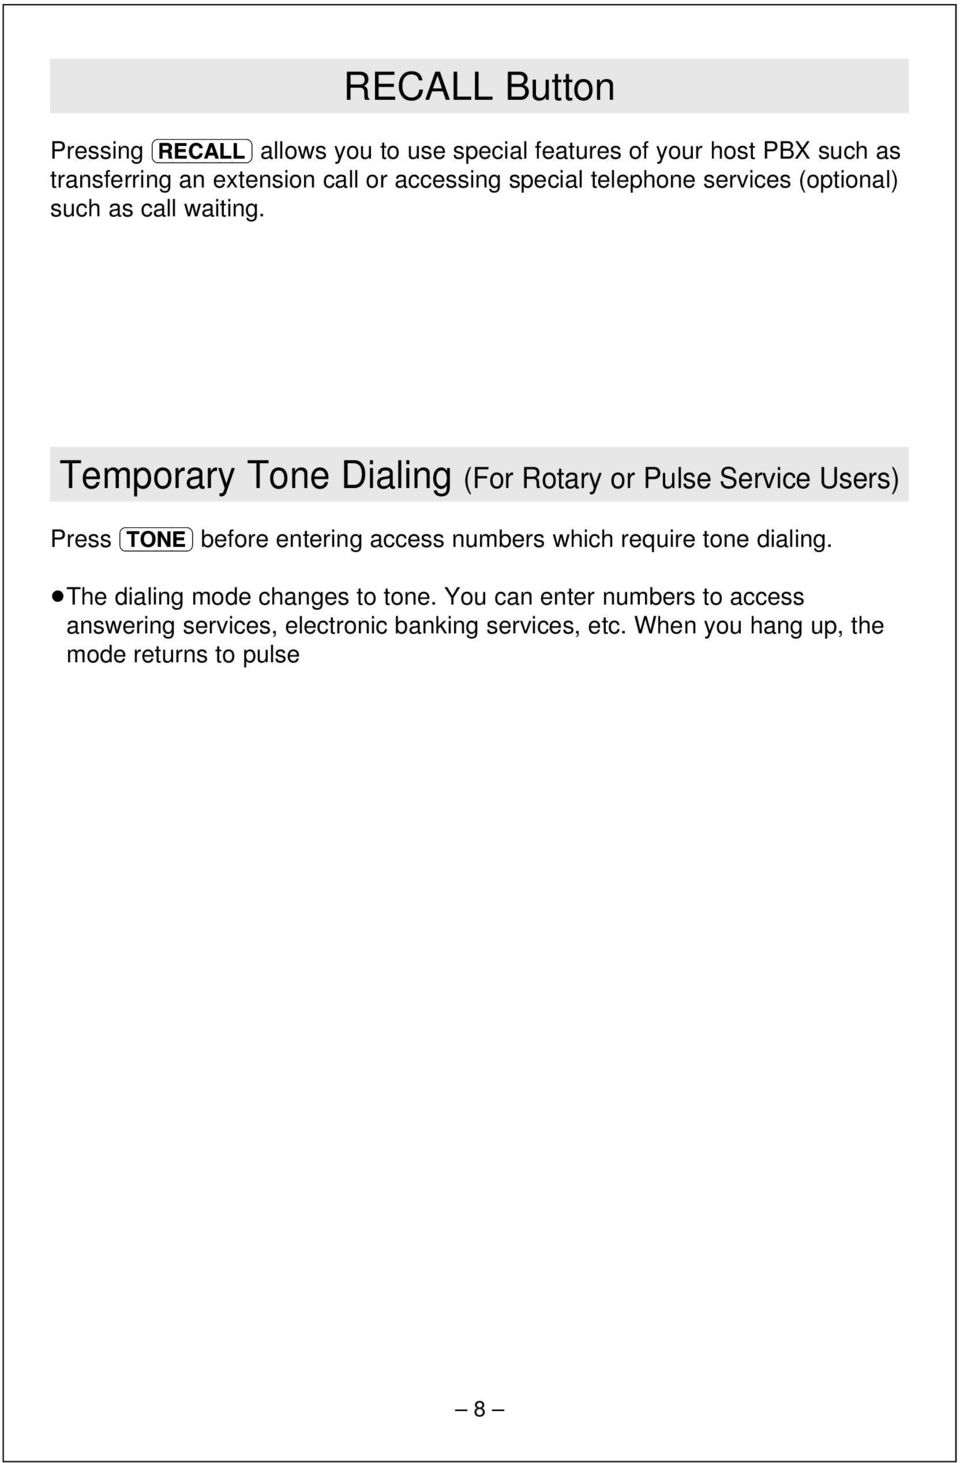 Temporary Tone Dialing (For Rotary or Pulse Service Users) Press (TONE) before entering access numbers which require tone